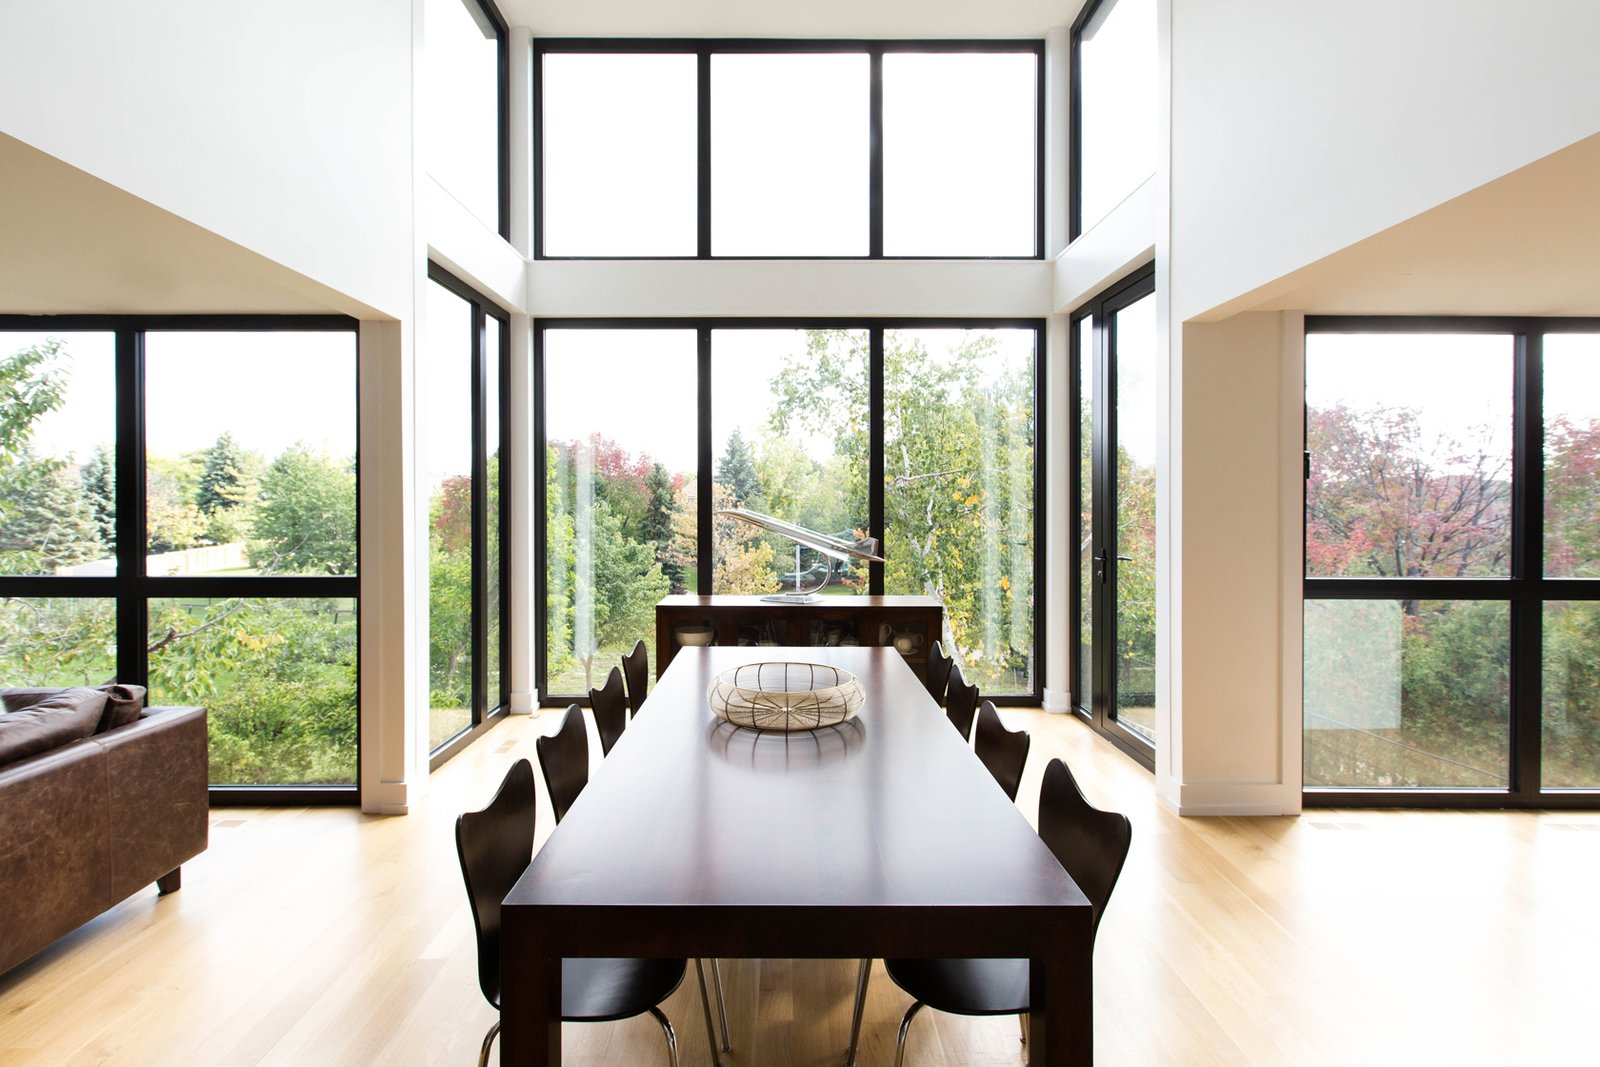 The extensive use of wood on the interiors ties the house back to nature, as views of the ravine in the backyard can be enjoyed through the massive floor-to-ceiling windows along the kitchen and whole rear wall of the home.  Ravine House by FrankFranco Architects